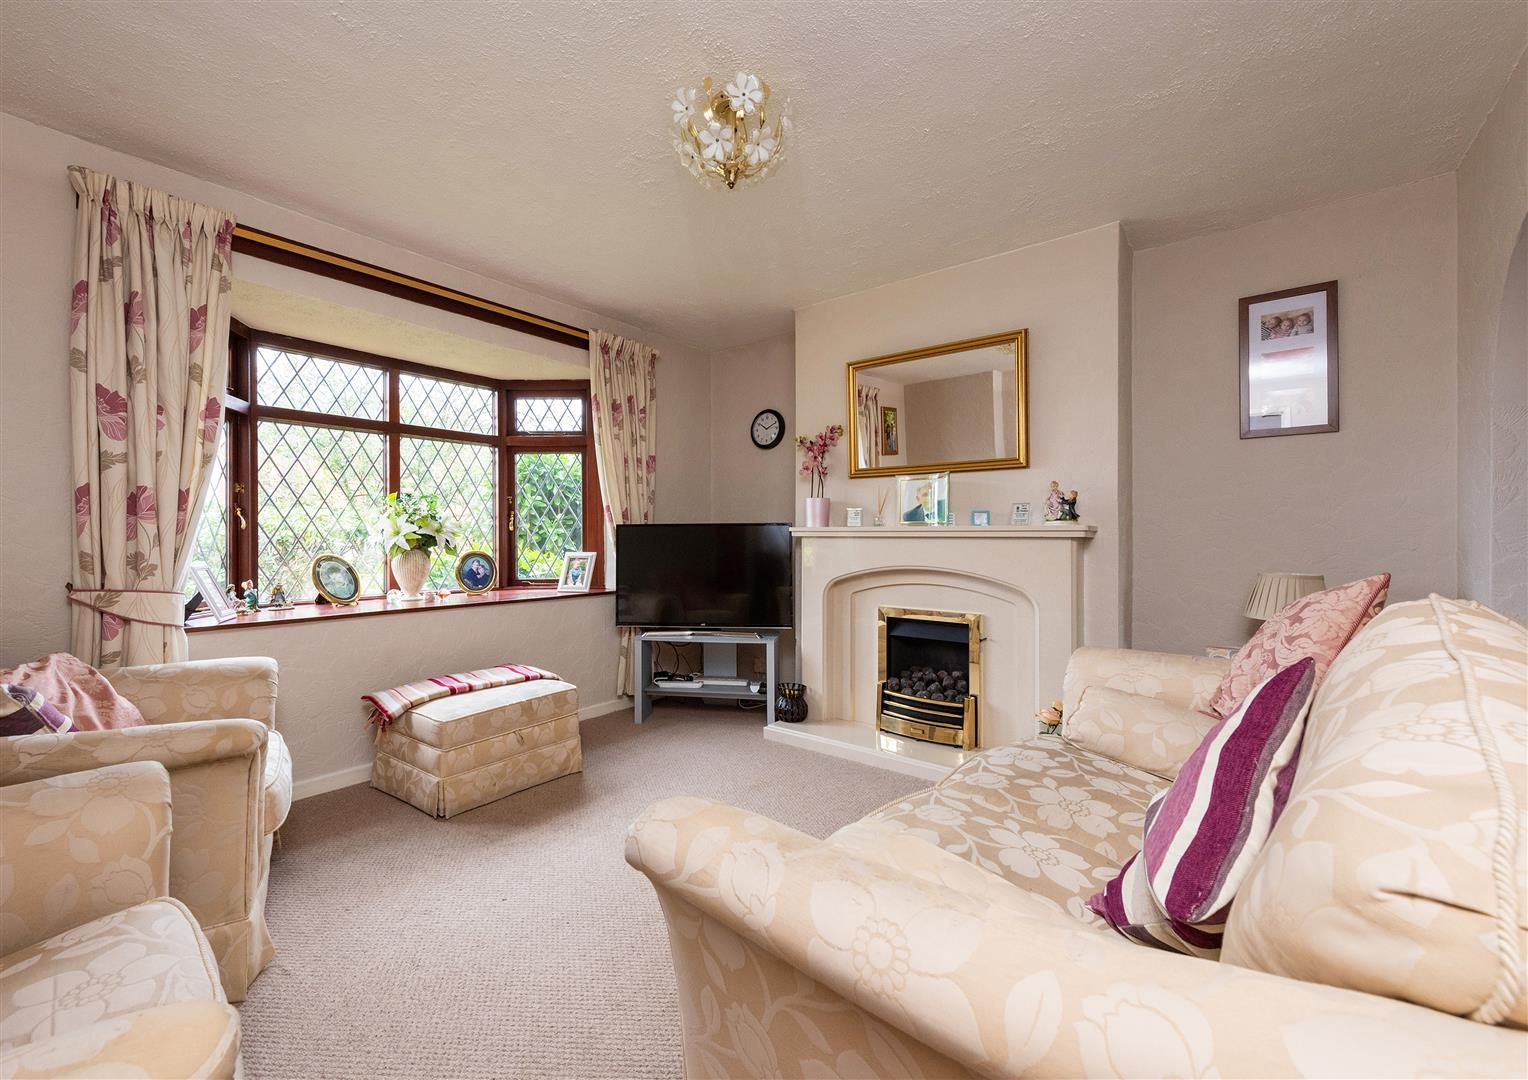 3 bed house for sale in Belbroughton  - Property Image 2